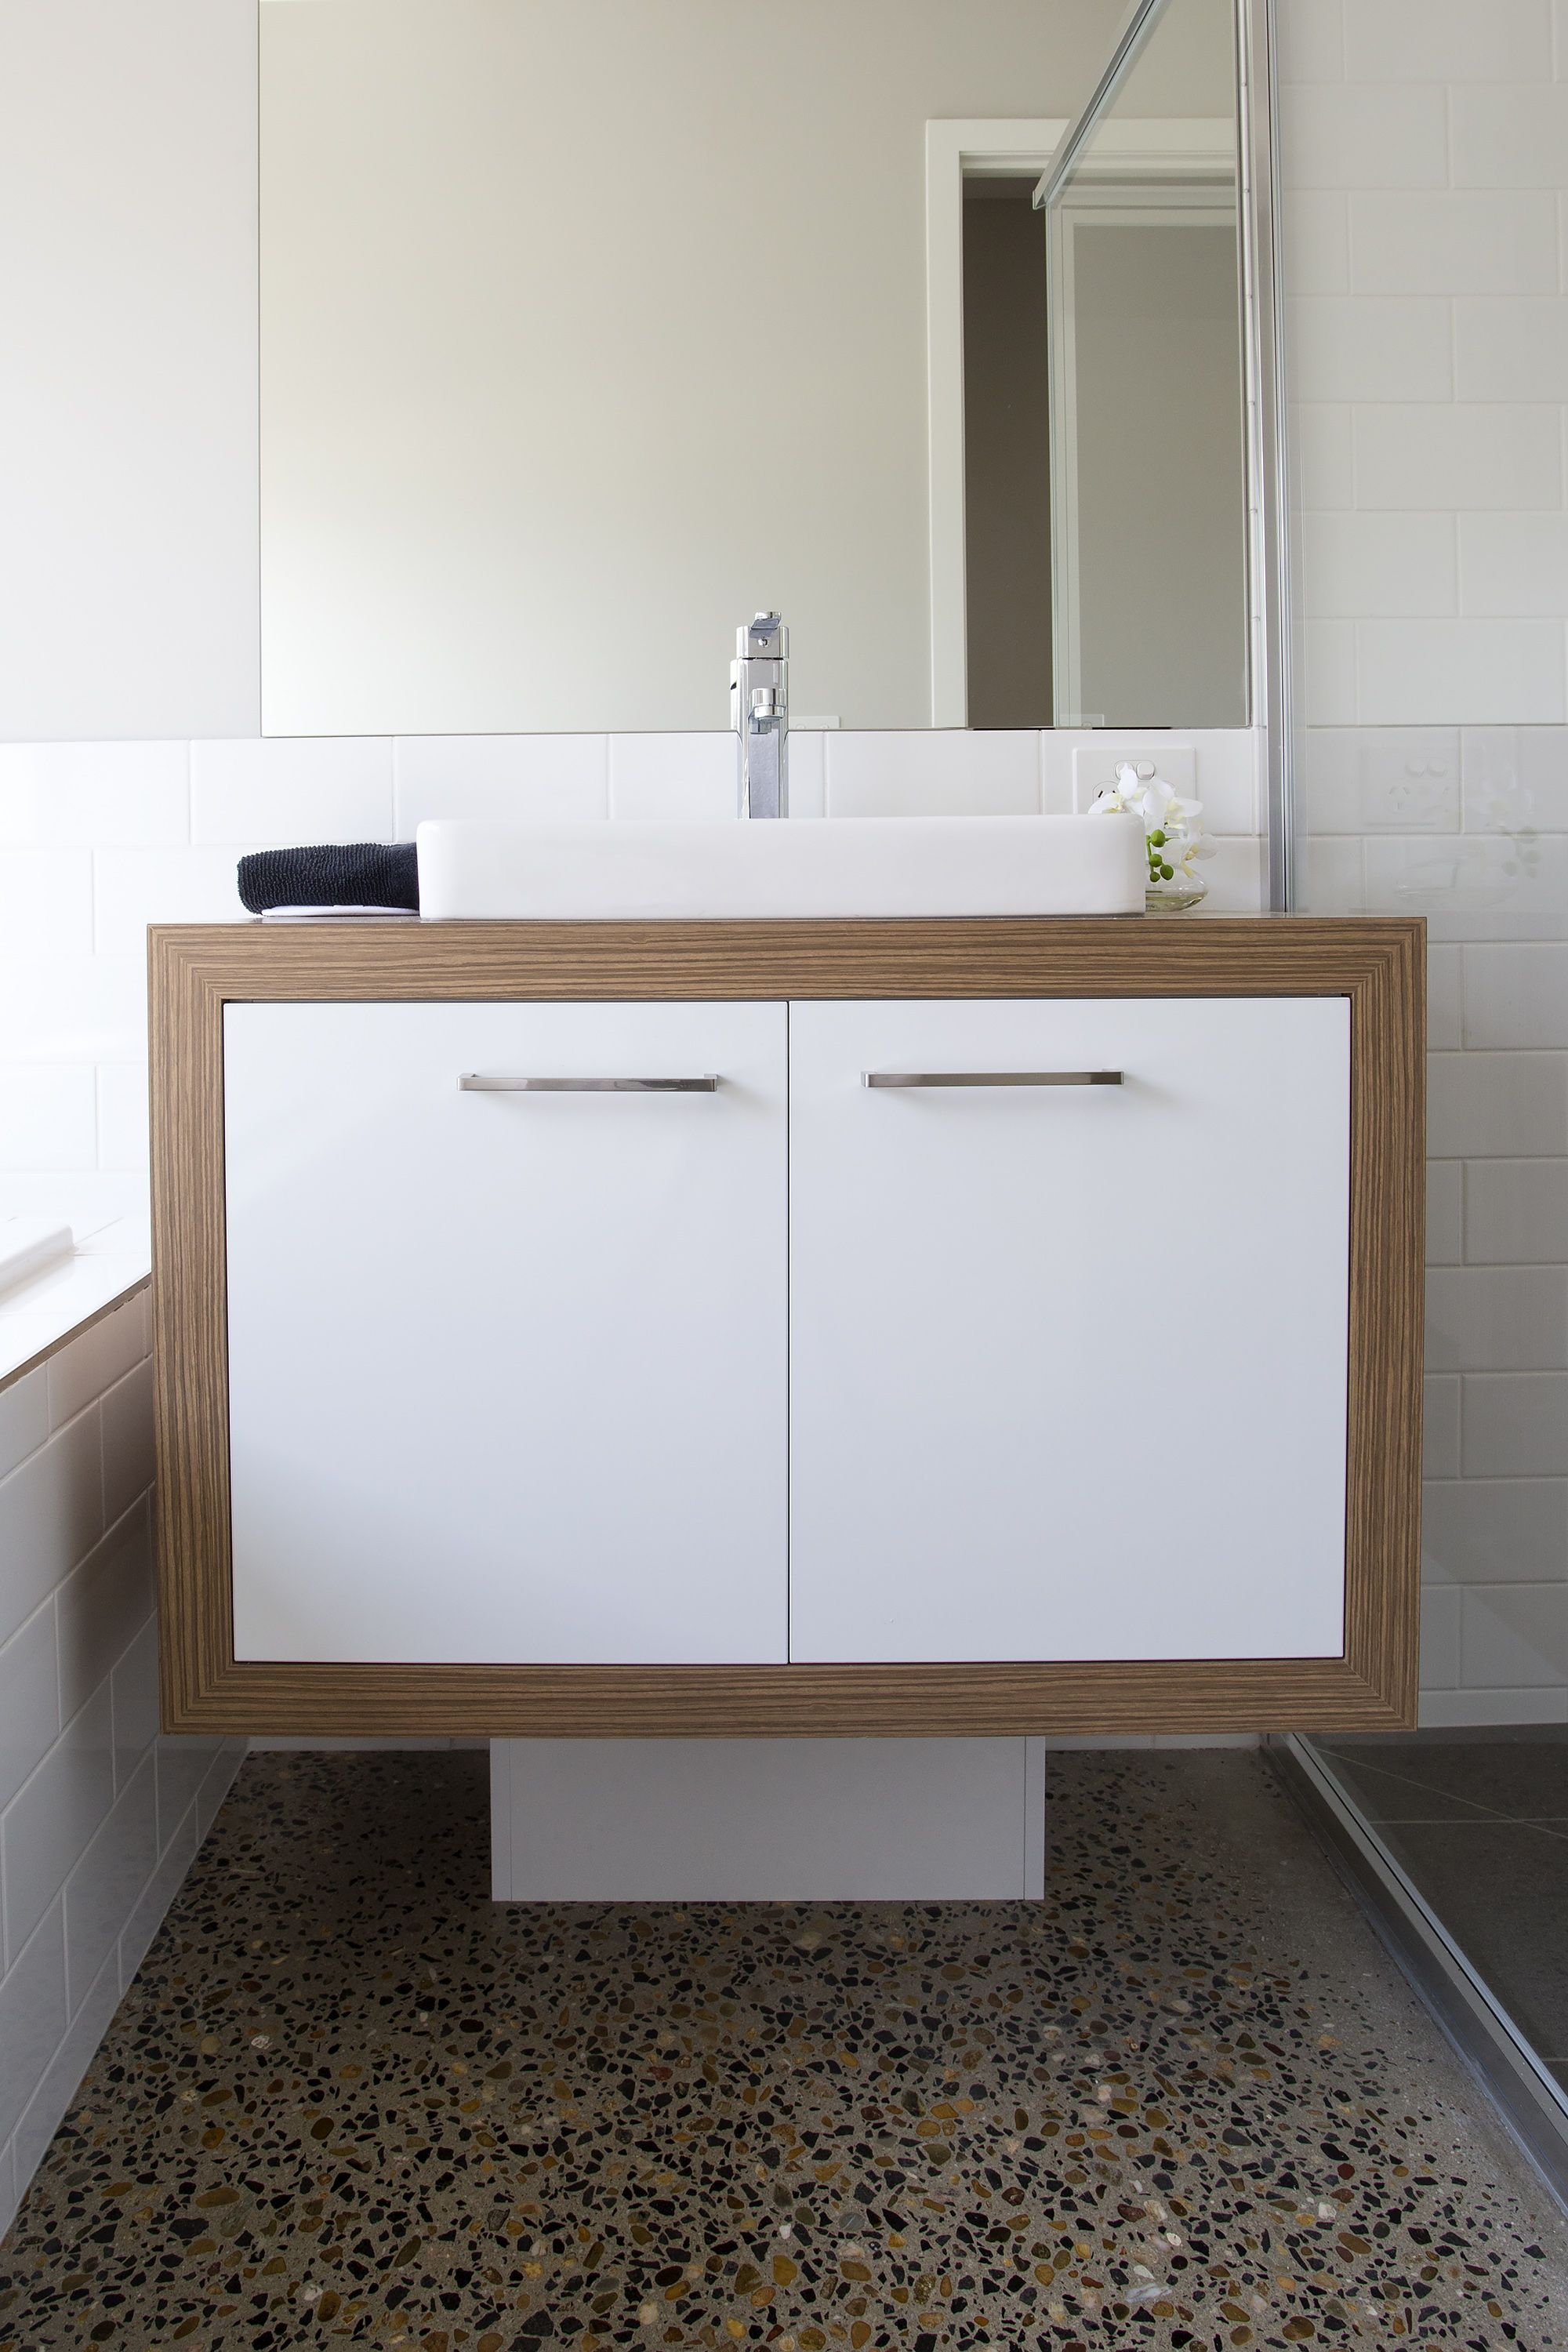 Bathroom Vanity by Bourke\u0027s Kitchens Benchtop and Surround - Zebrano Natural Finish by Laminex Doors and & Bathroom Vanity by Bourke\u0027s Kitchens Benchtop and Surround ... Pezcame.Com